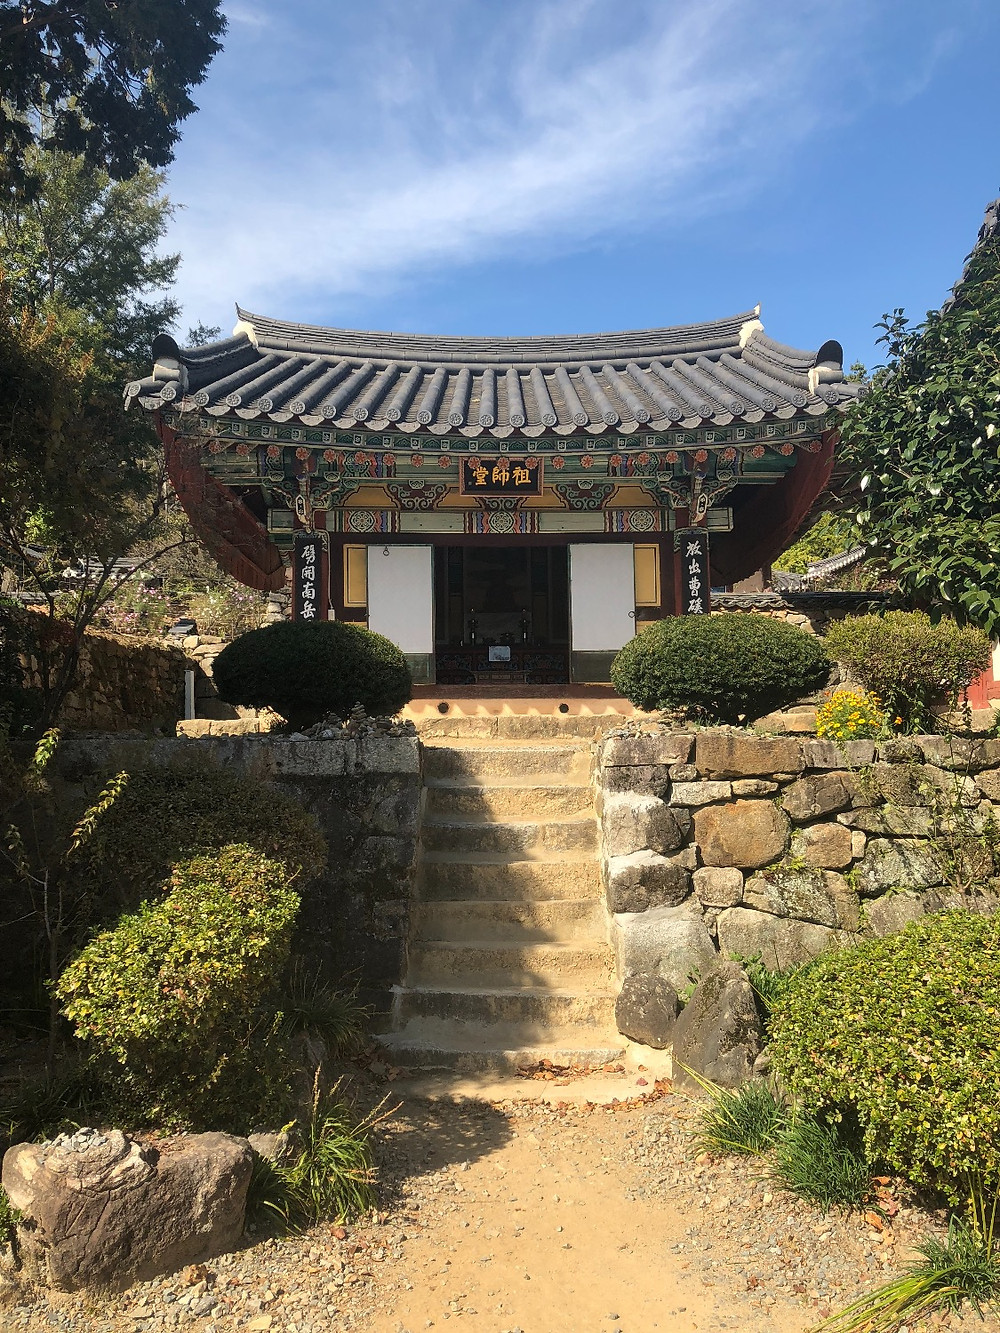 A side temple in the Seonamsa Temple compound